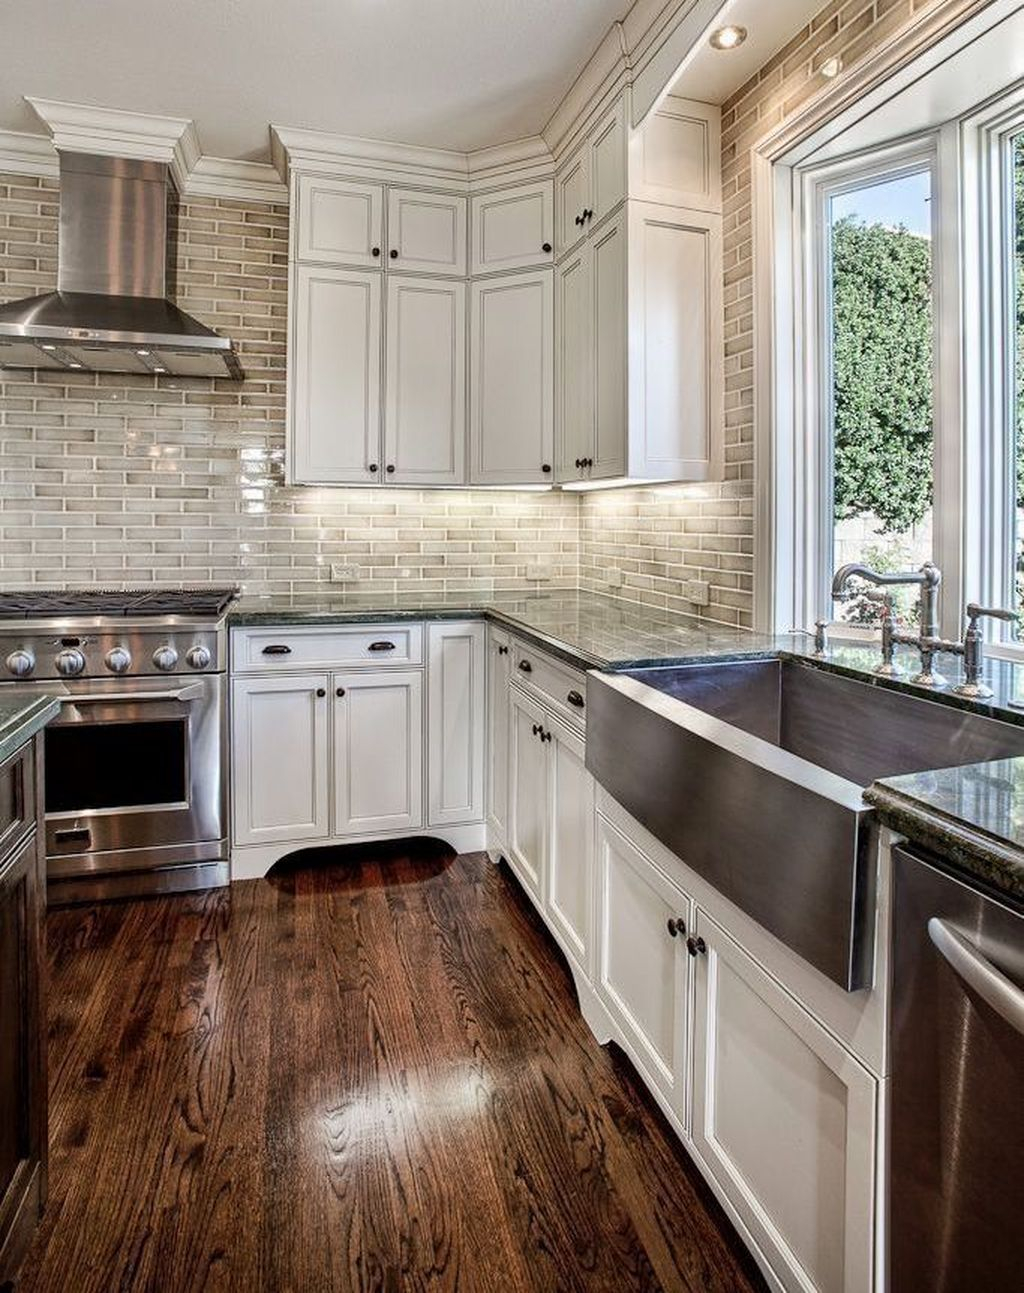 Cool Diy Kitchen Design Ideas You Will Definitely Want To Keep 07